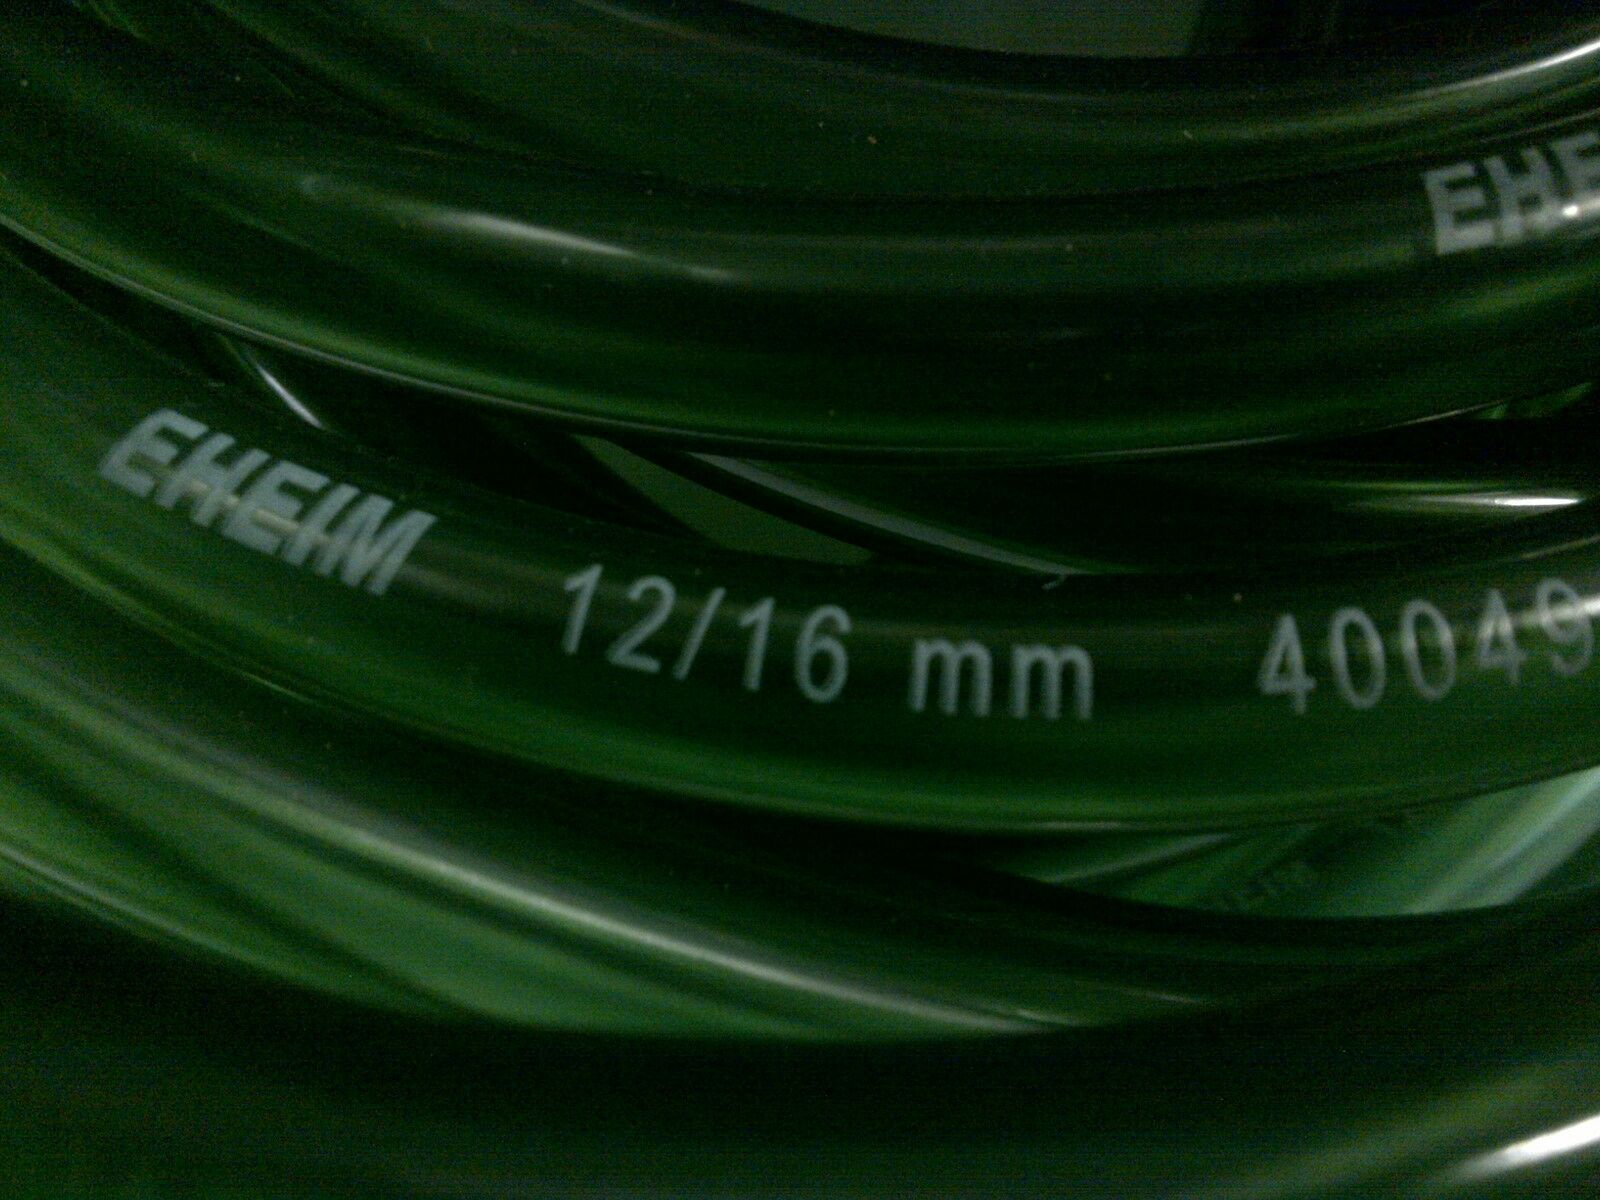 New Eheim 12/16 hoses 1 metre length